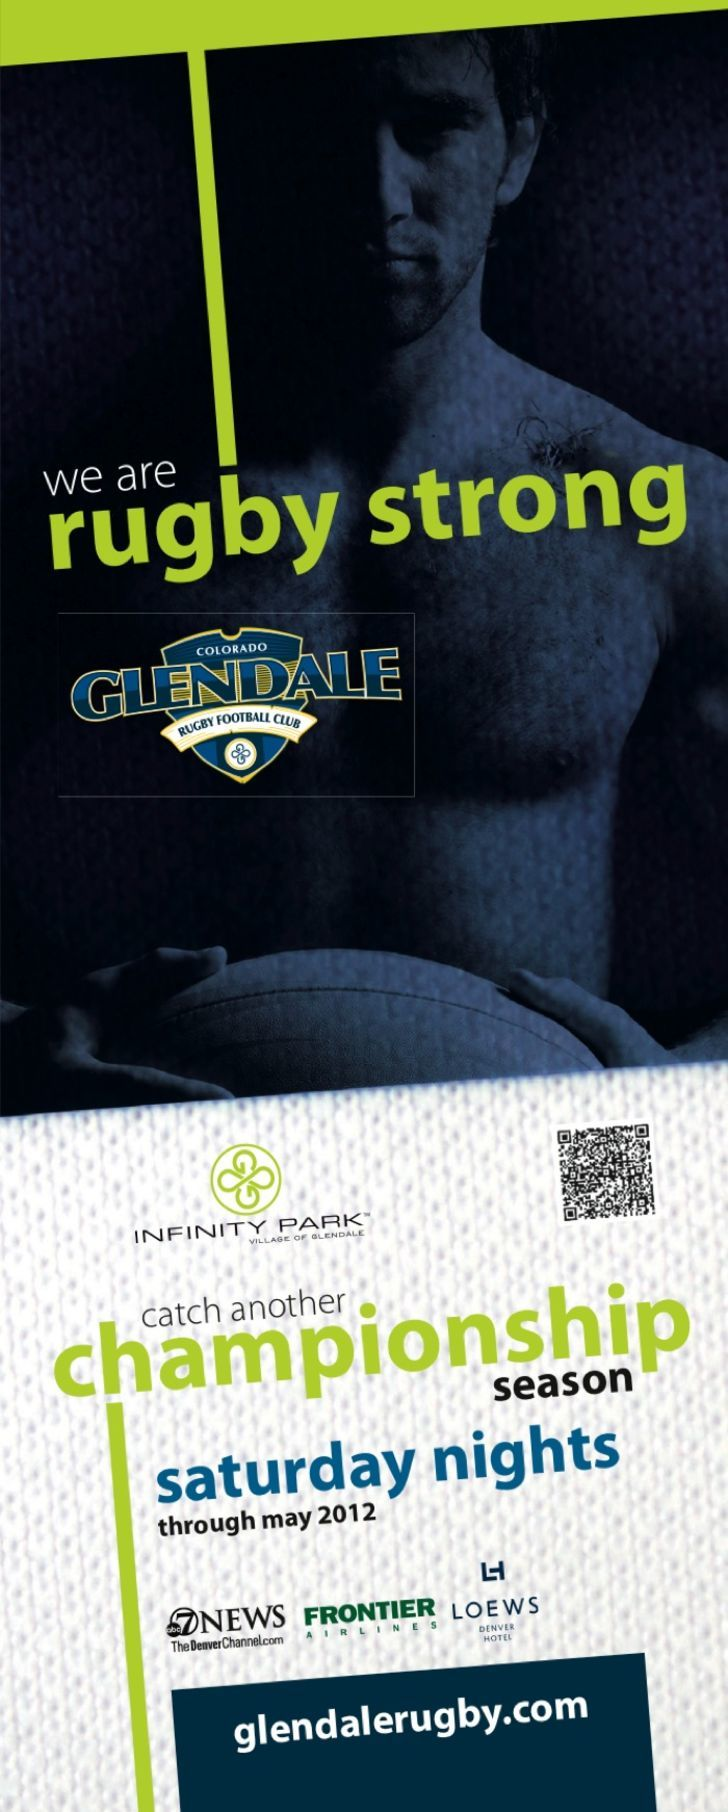 Glendale Rugby at Infinity Park